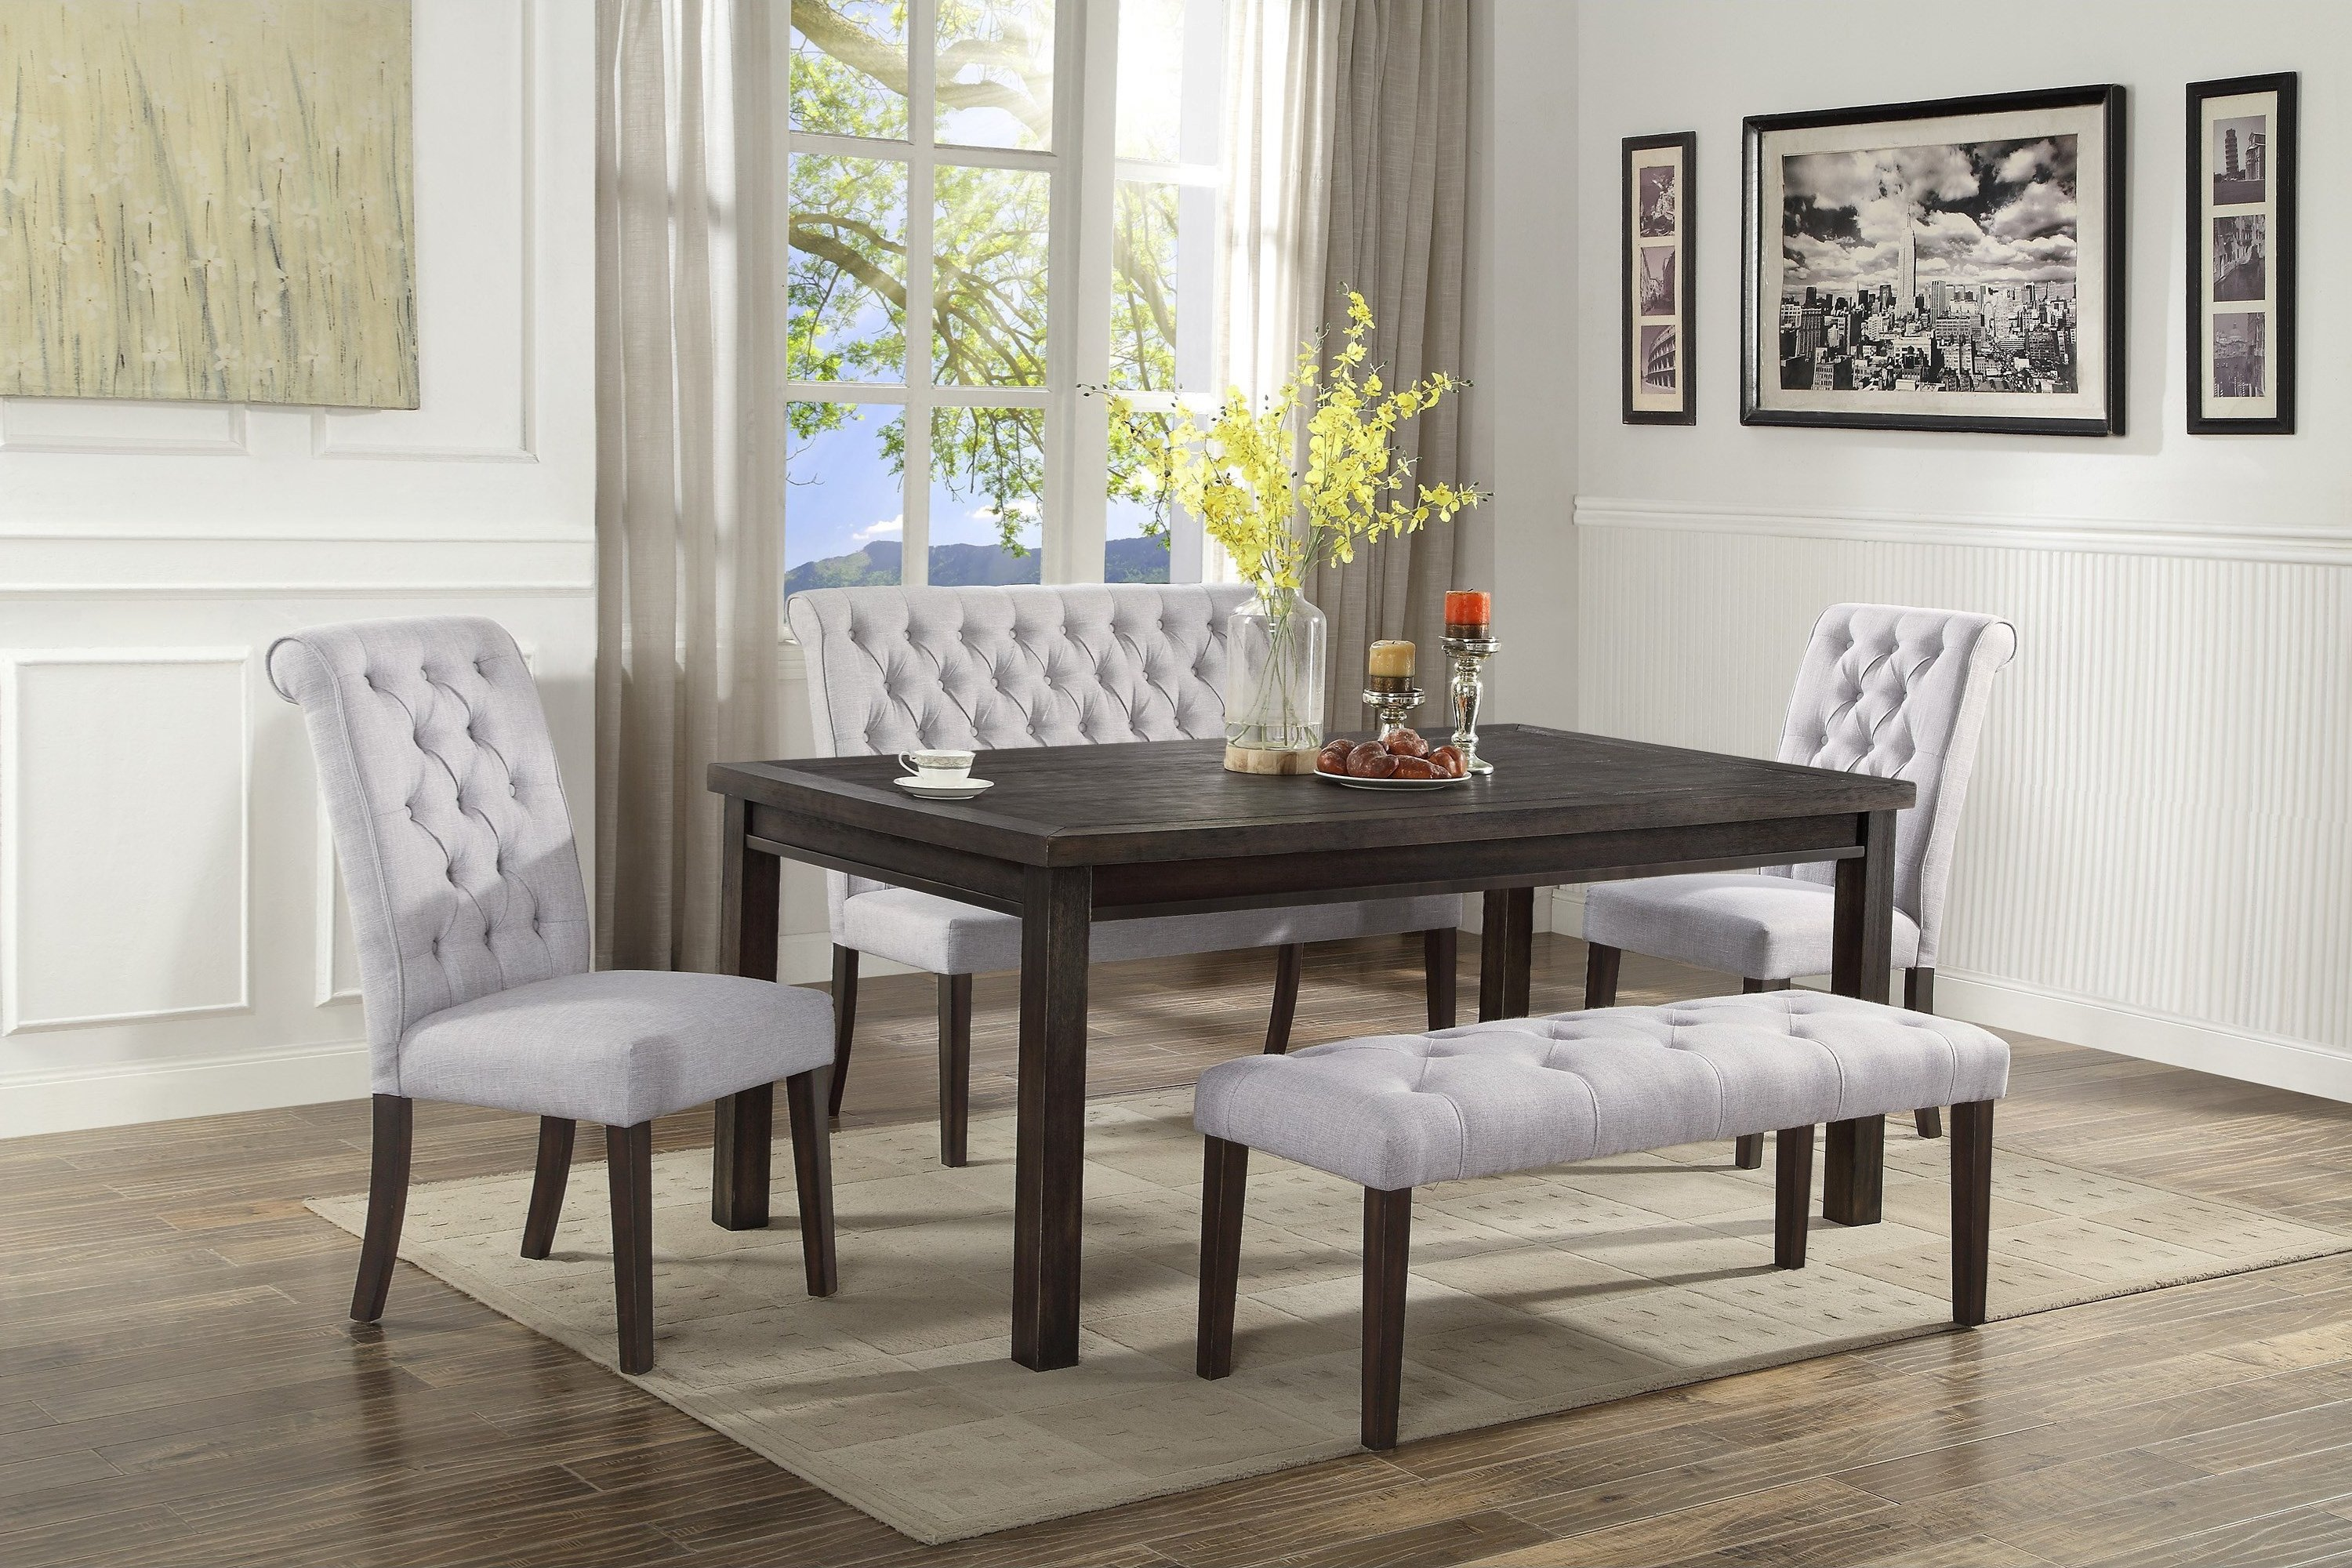 Palmer C M 2022 5 Piece Dinette Table